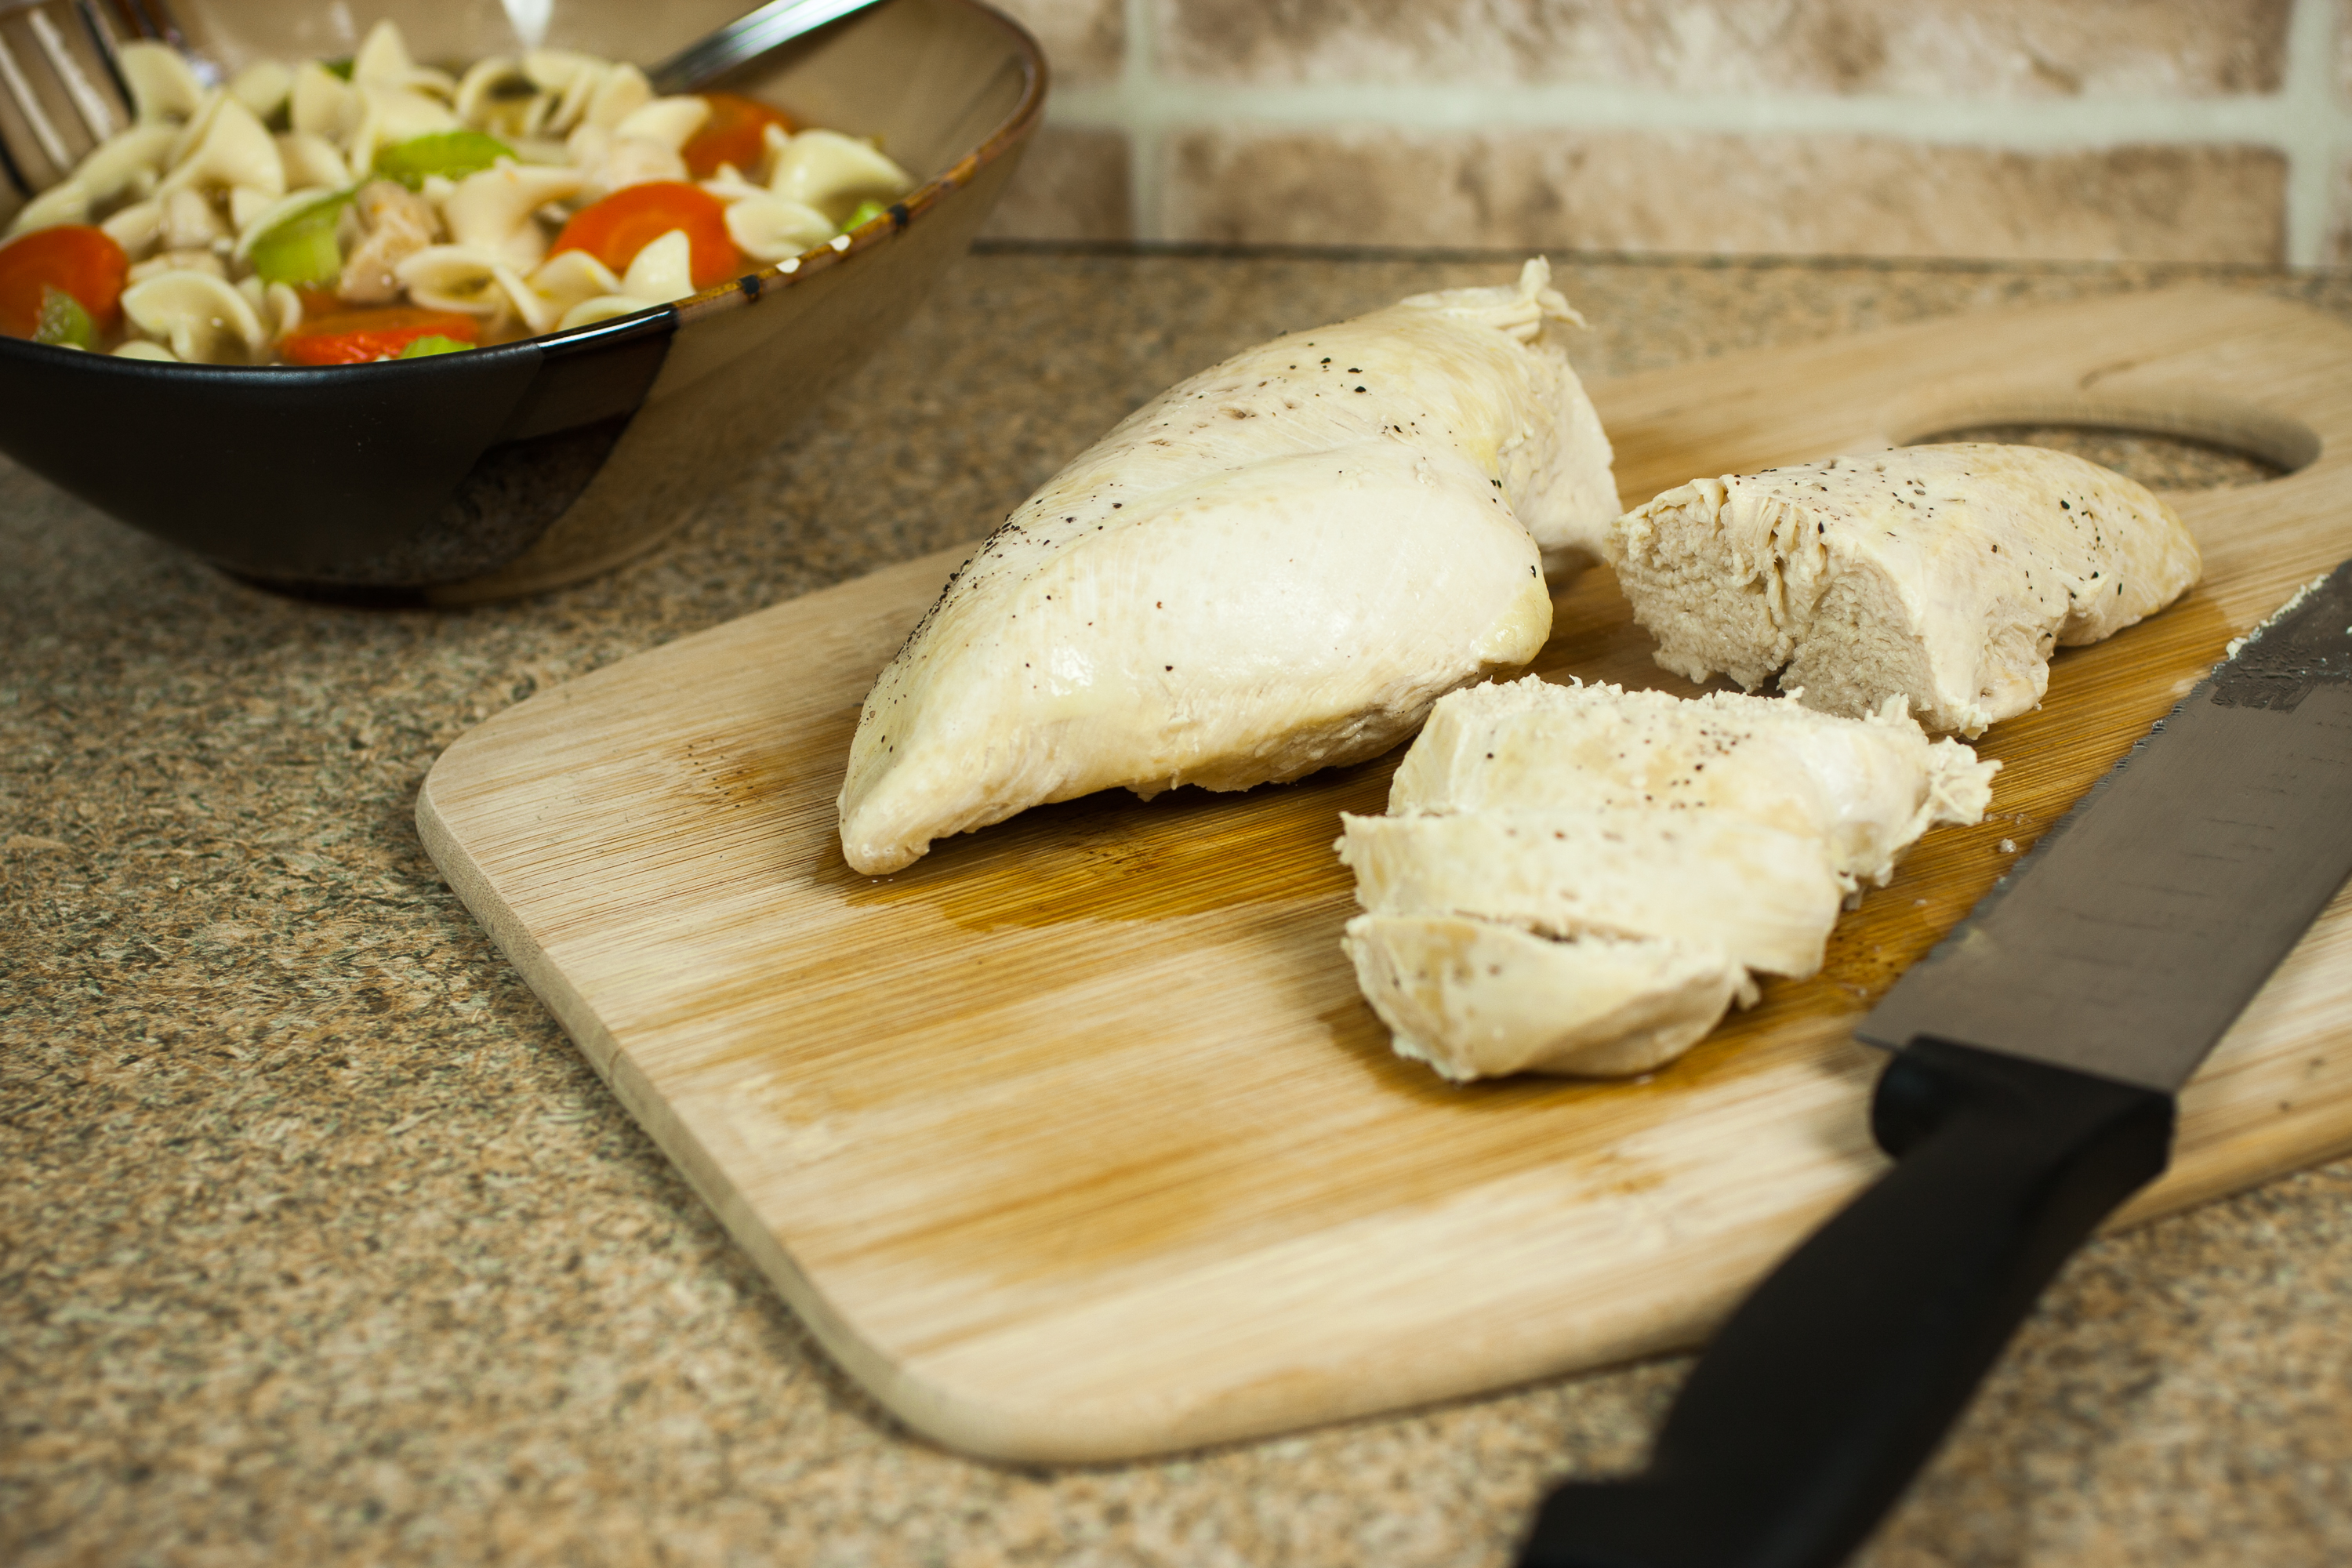 How to Tell If Chicken Is Freezer-Burned | LEAFtv